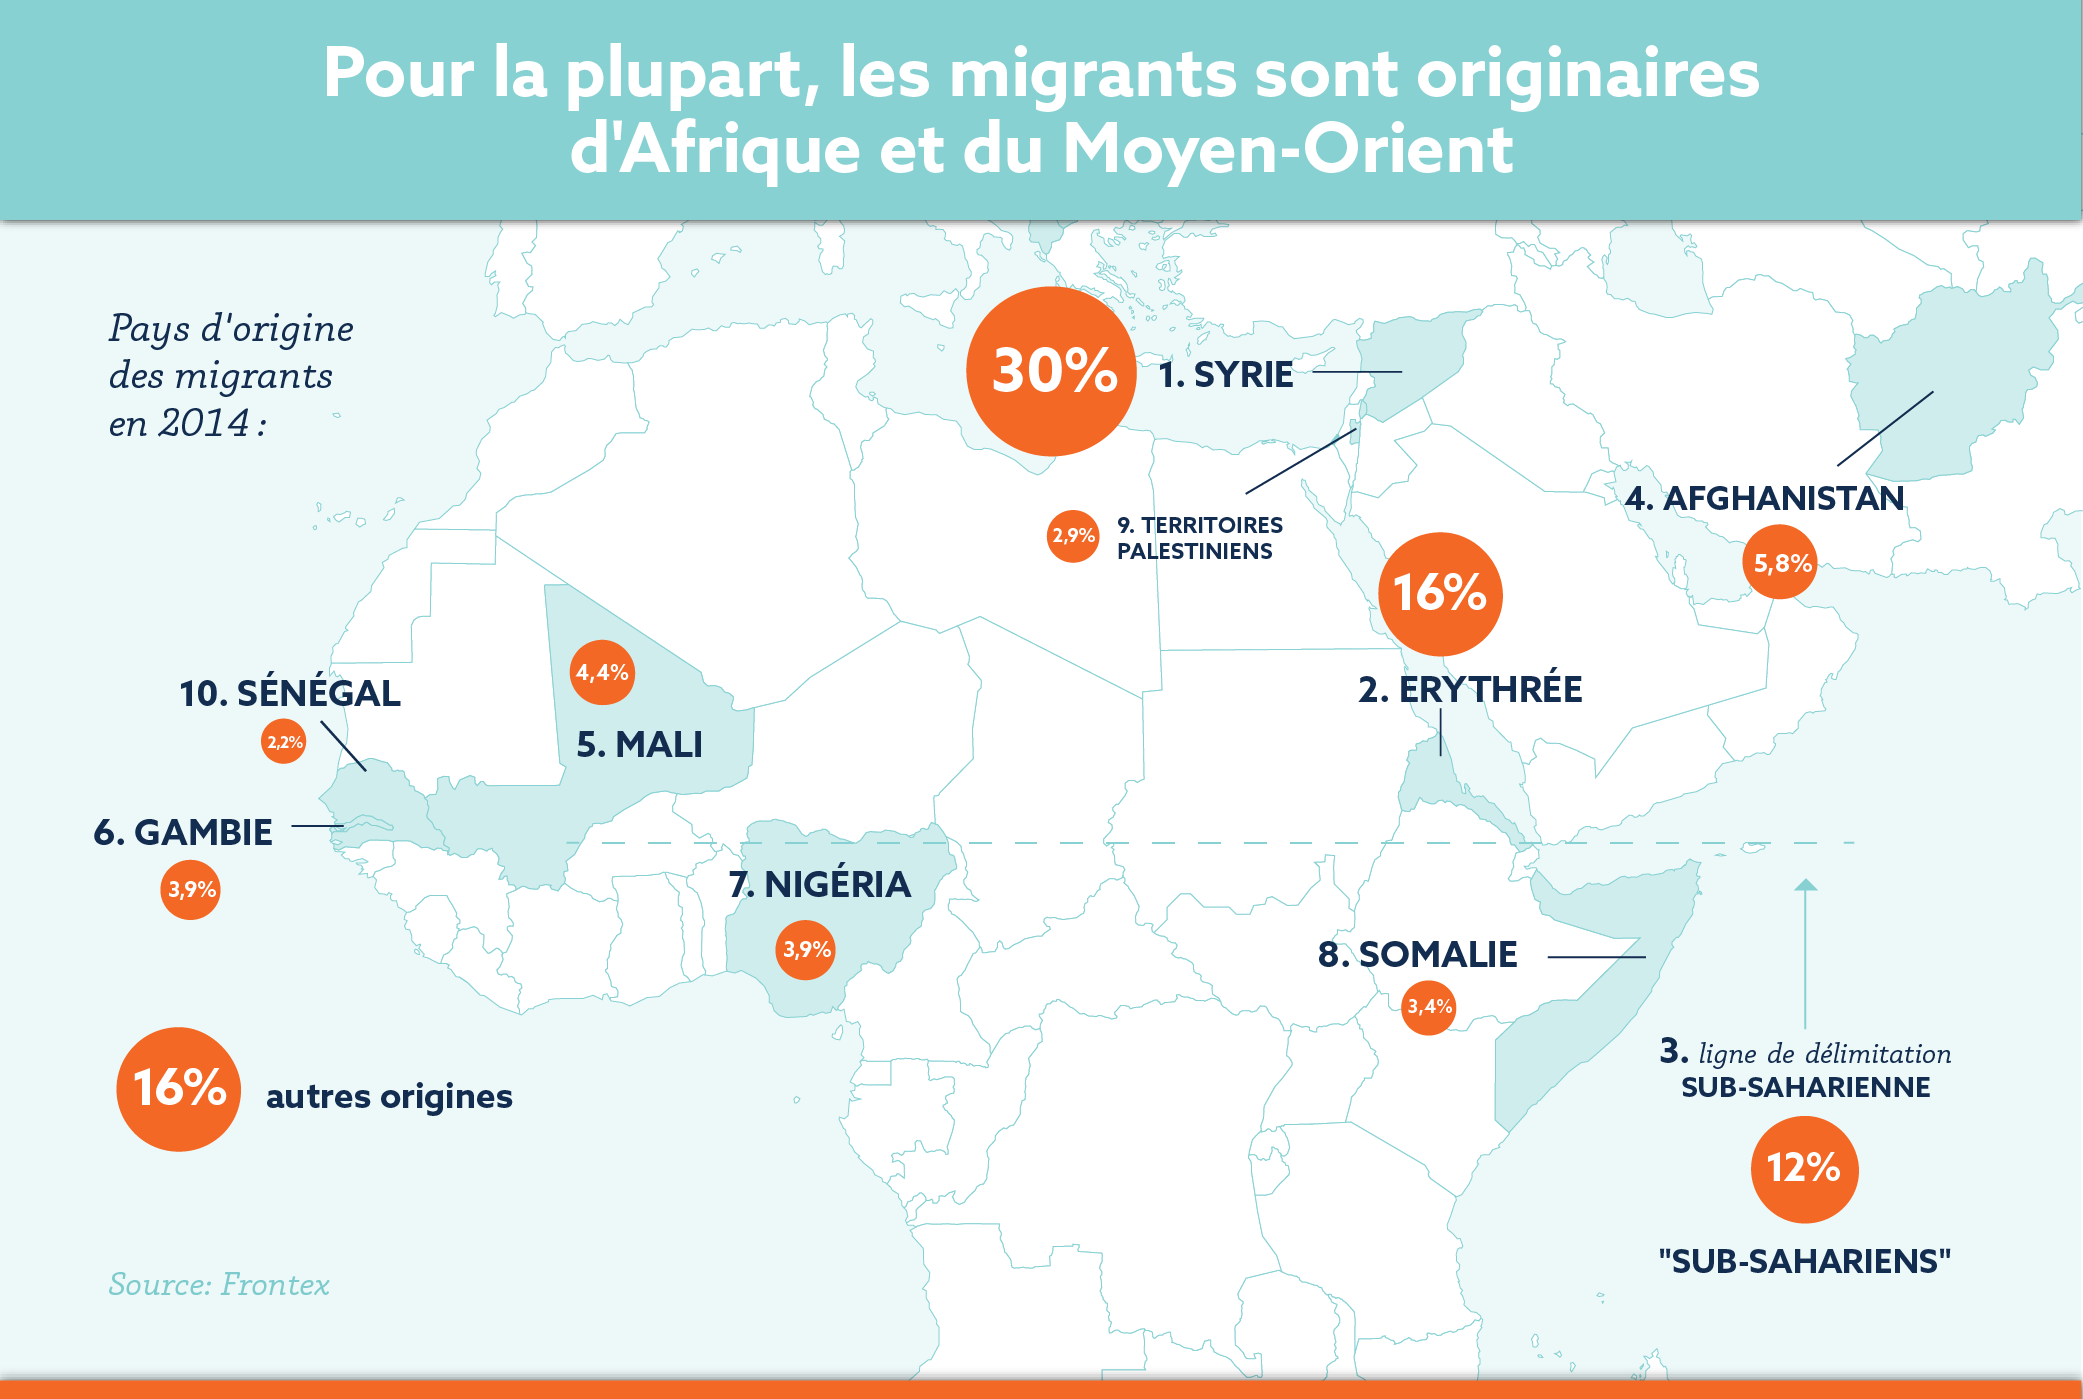 FRENCH_Migrants_Organized-08.png